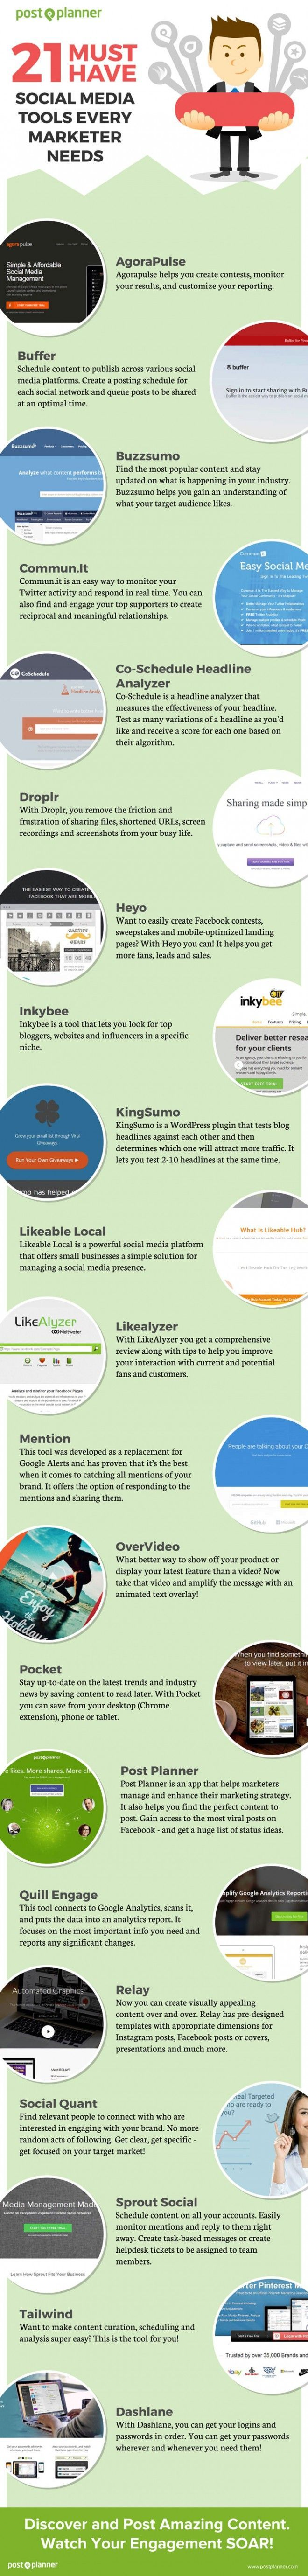 Social Media Tools For Smart Marketers  Blog Media Marketing